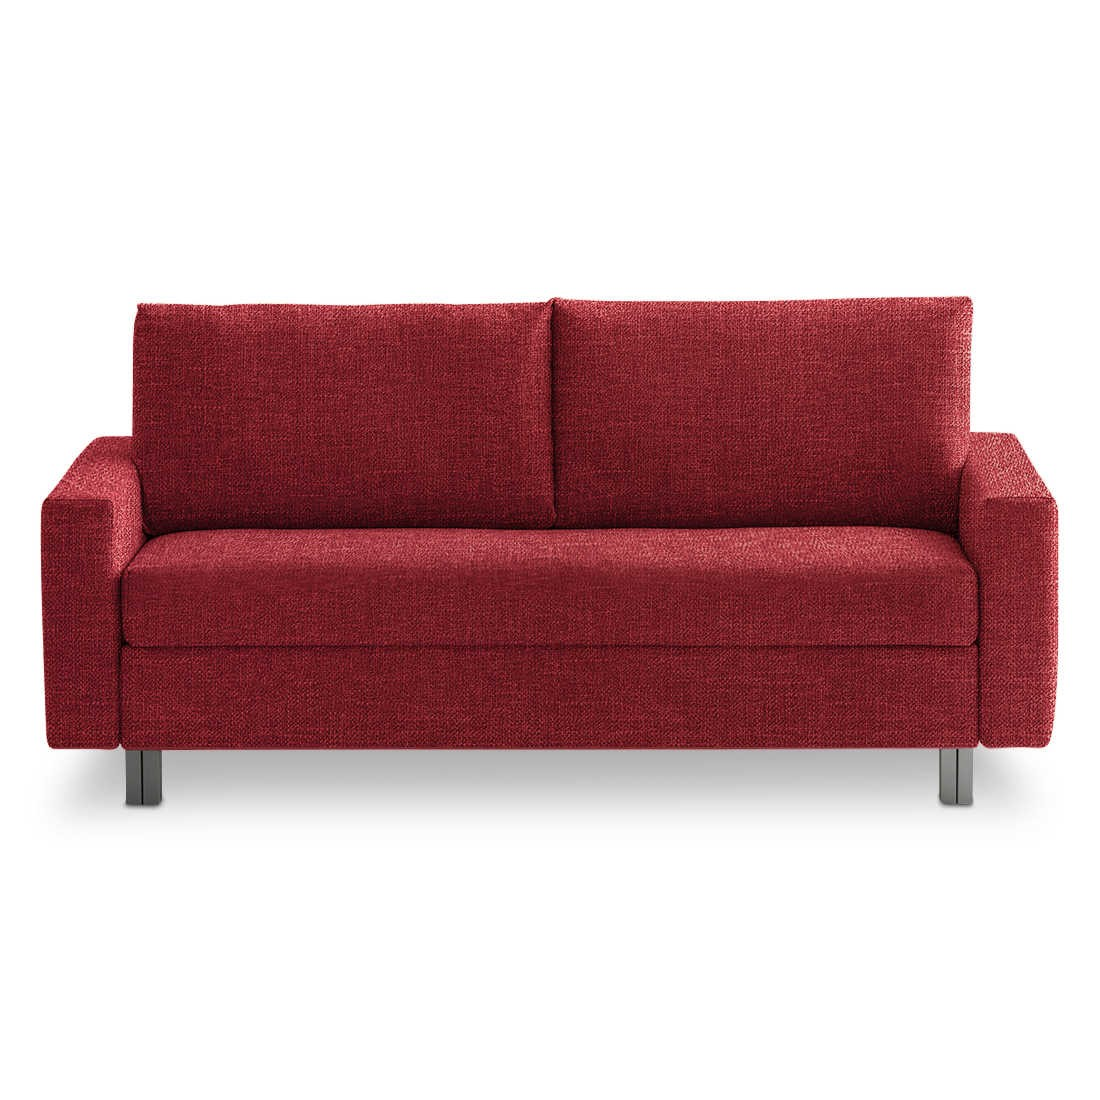 franz fertig schlafsofa maxita rot stoff online kaufen bei. Black Bedroom Furniture Sets. Home Design Ideas